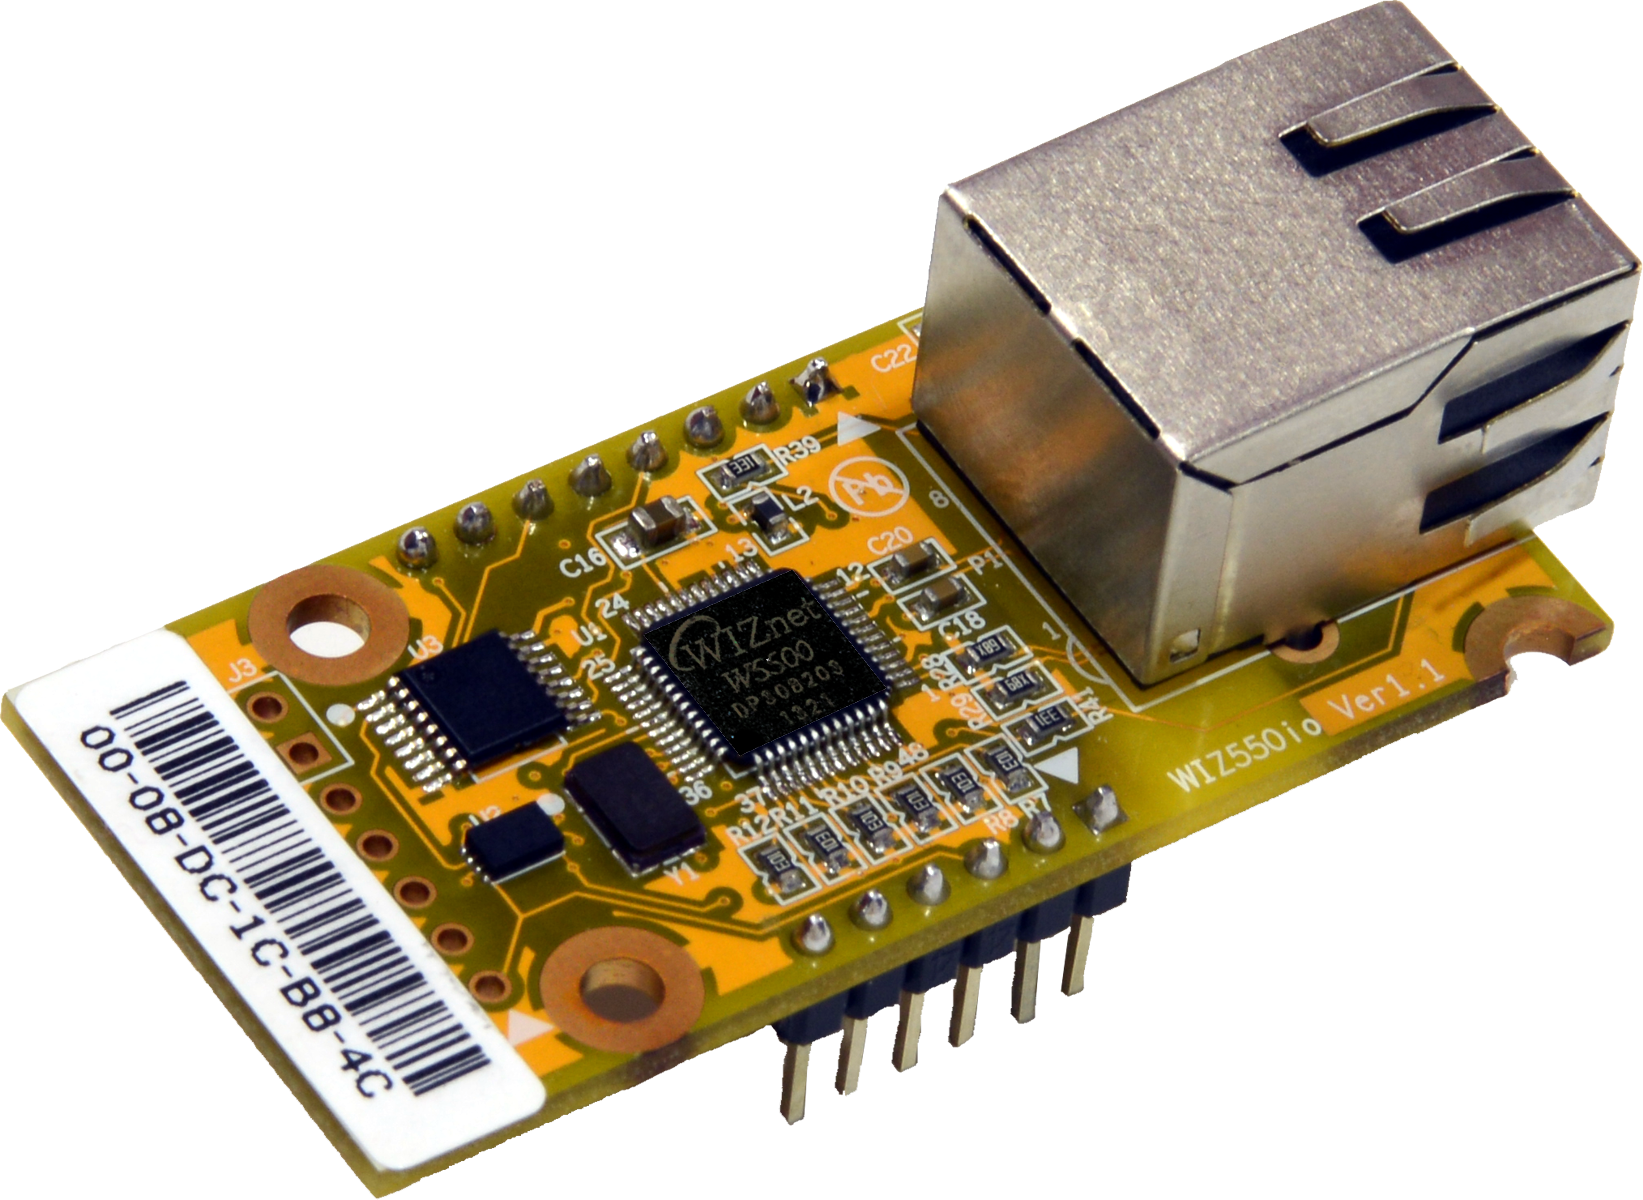 WIZ550io Module version 1.1